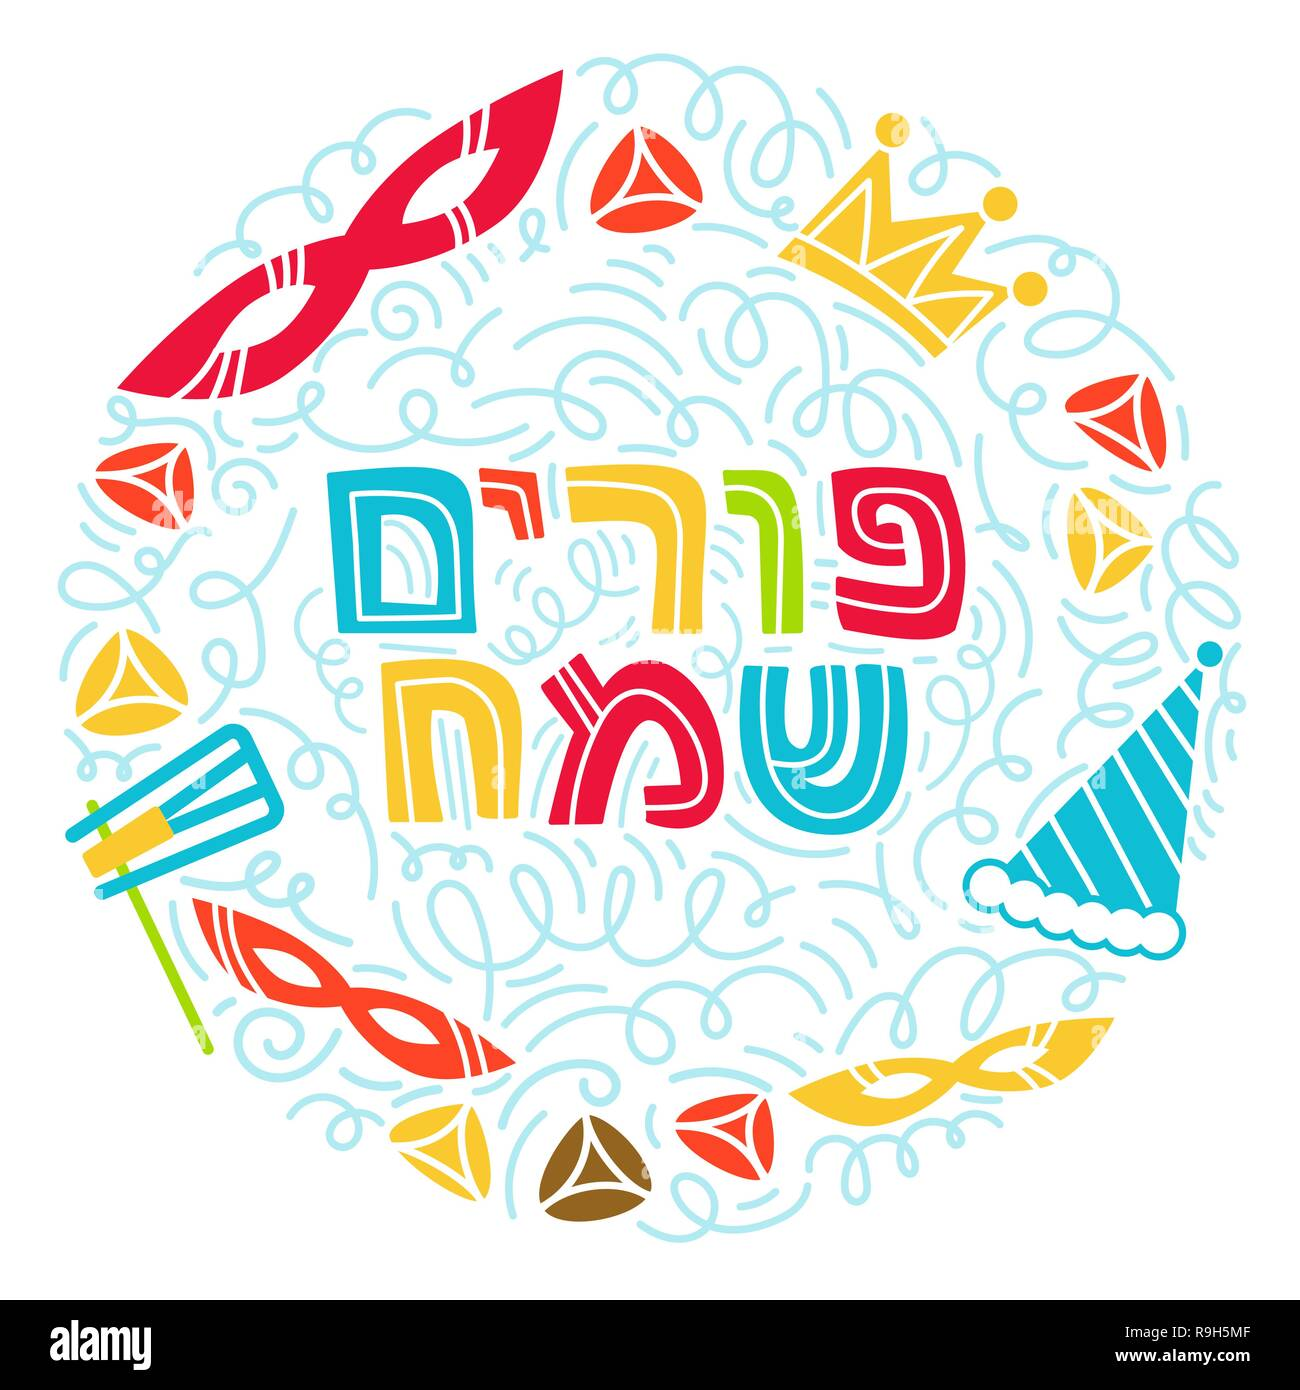 Purim greeting card in doodle style with crown, noise make, hamantaschen and Hebrew text Happy Purim. Colorful vector illustration. Isolated on white background Stock Vector